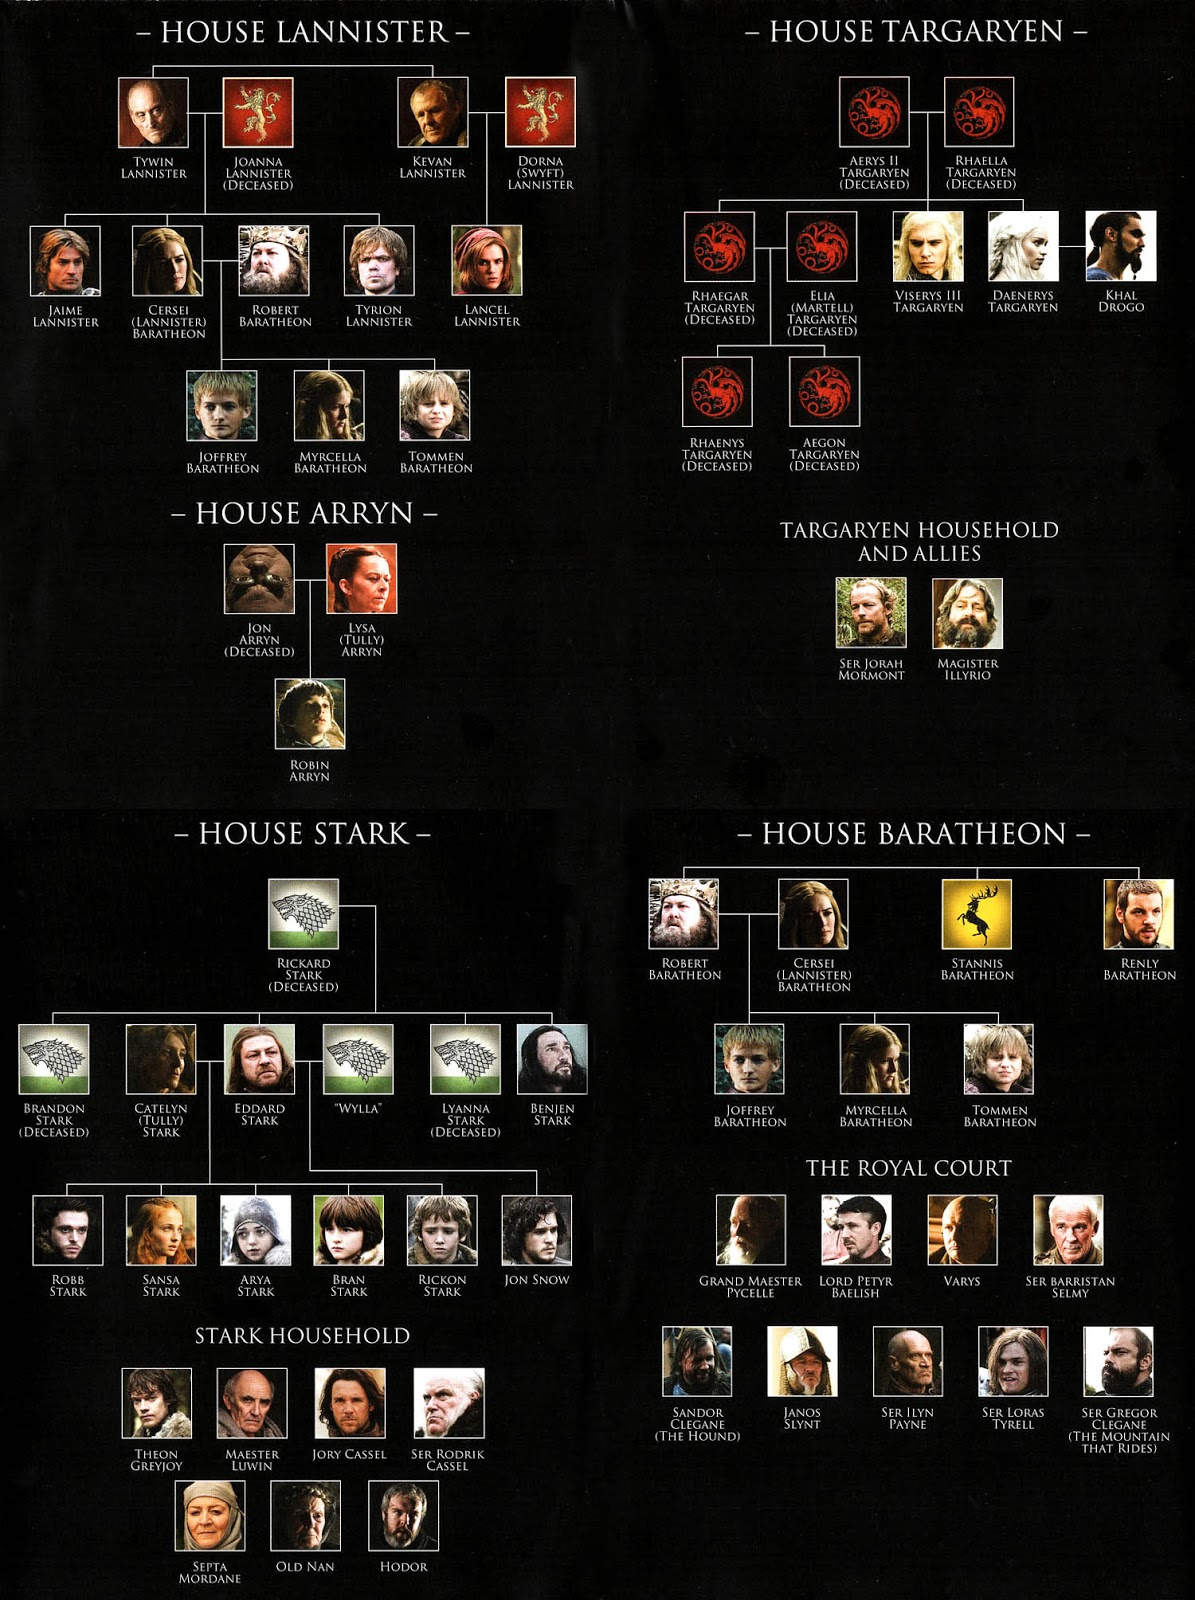 list of deaths in game of thrones season 5